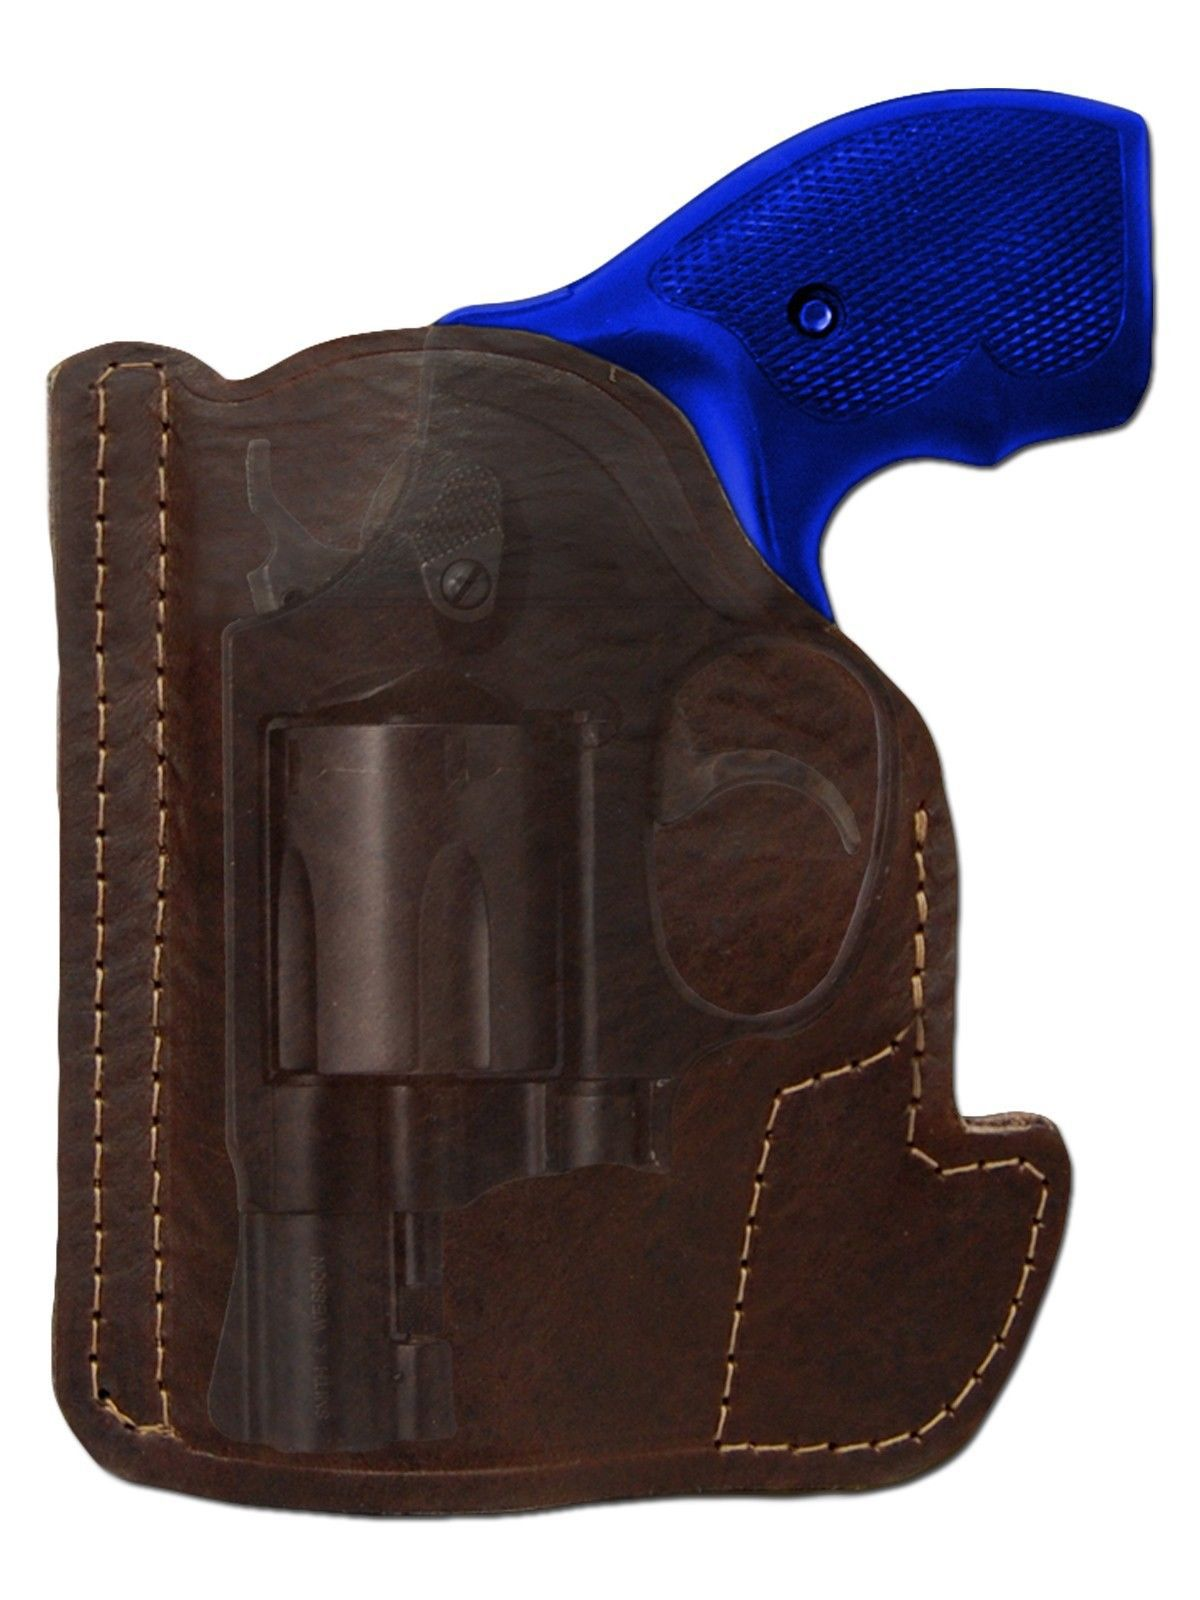 "New Barsony Brown Leather Gun Pocket Holster S&W 2"" Snub Nose 38 357 Revolvers"